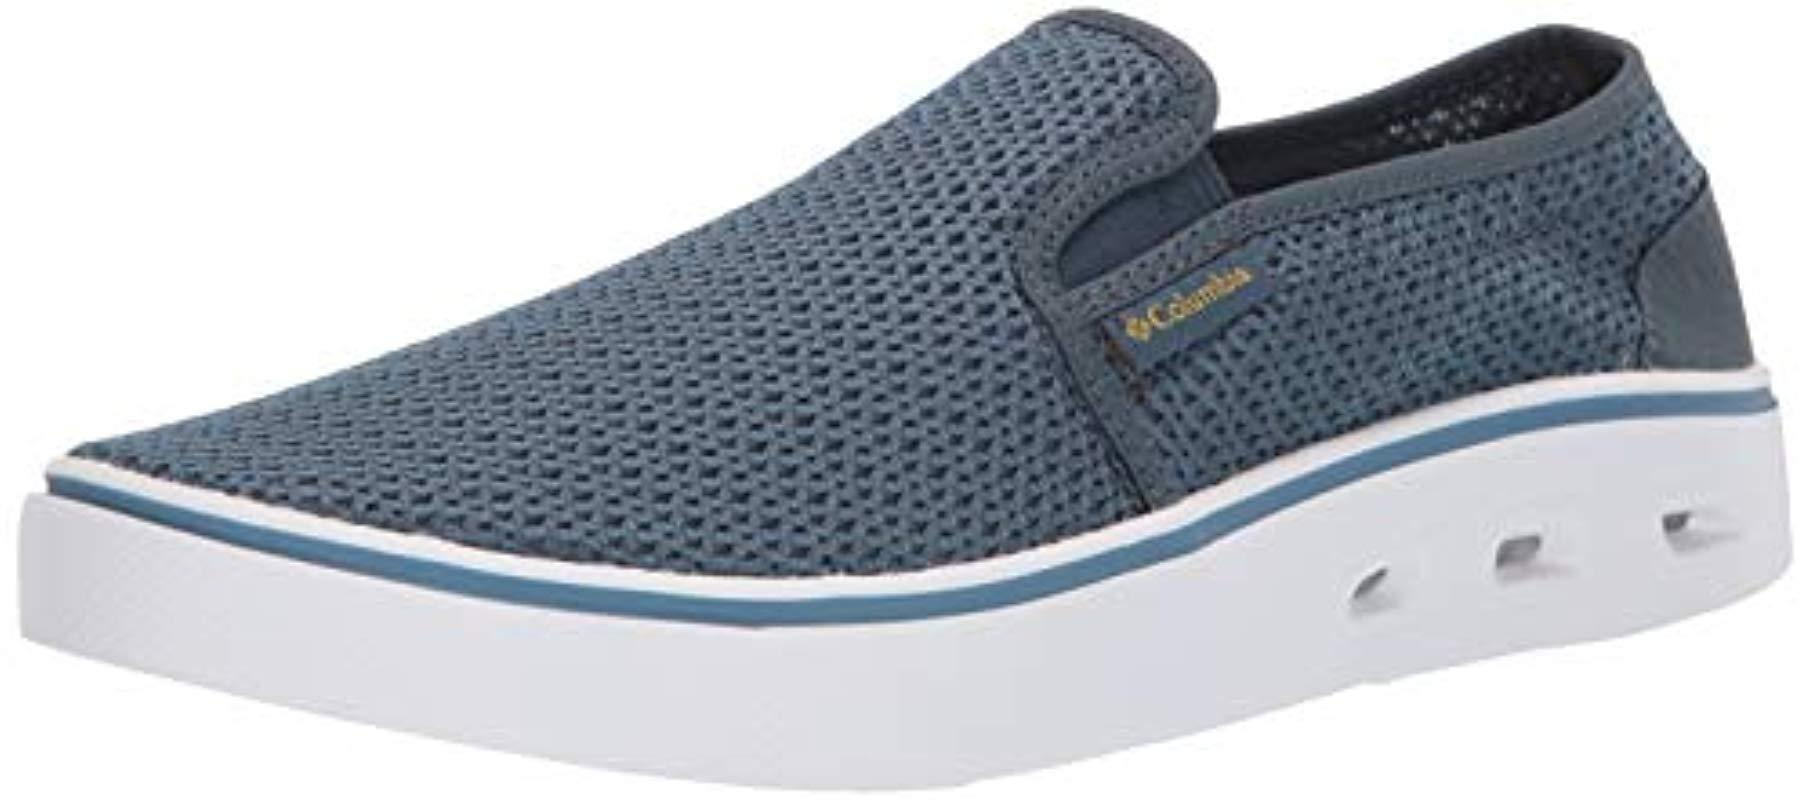 2eab166801a8 Lyst - Columbia Spinner Vent Moc Boat Shoe in Blue for Men